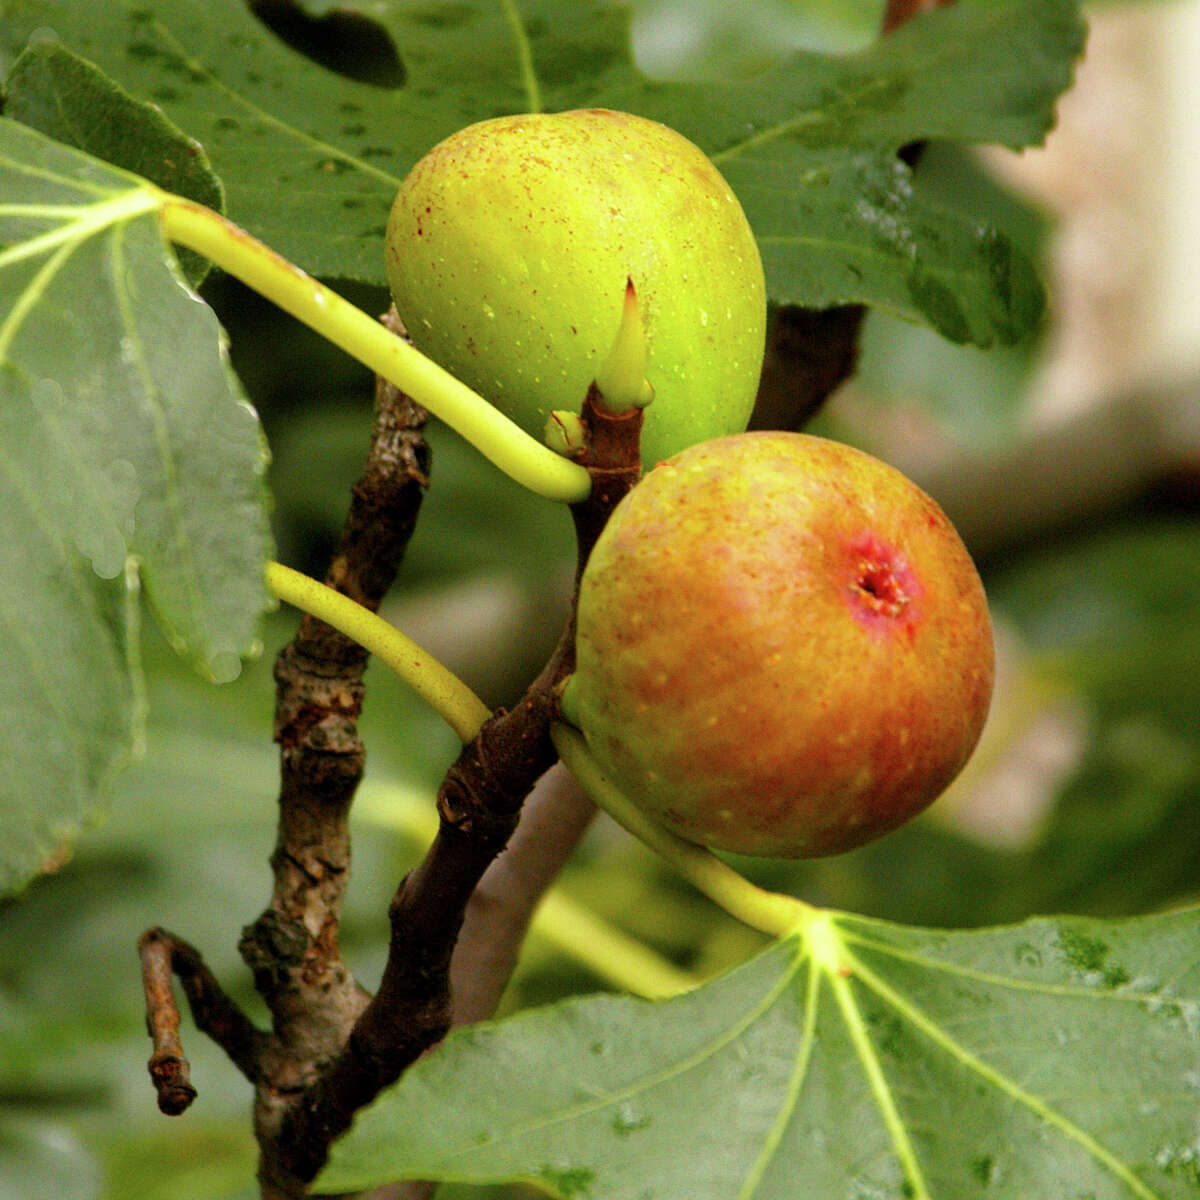 Figs require little pruning or fertilizer.